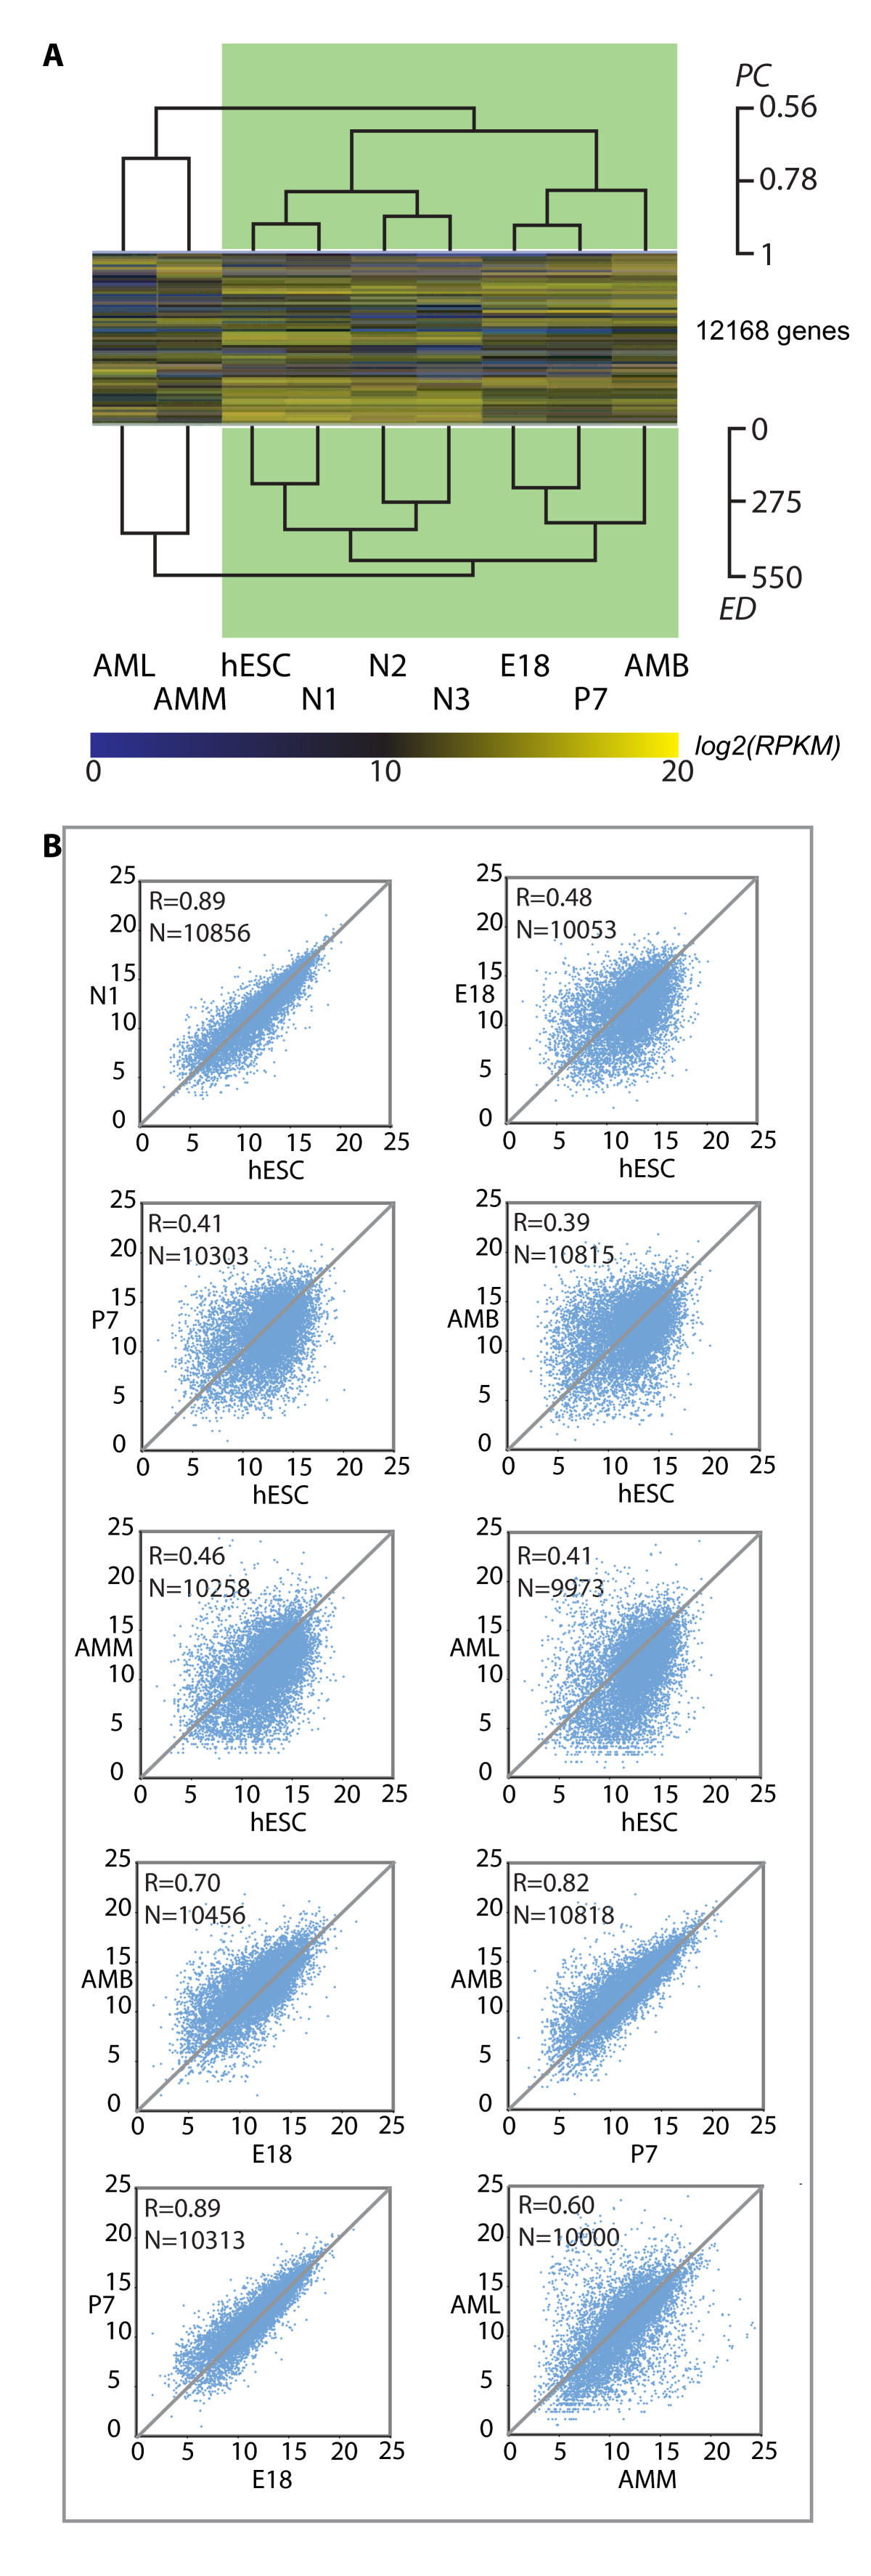 https://static-content.springer.com/image/art%3A10.1186%2F1471-2164-12-494/MediaObjects/12864_2011_Article_3639_Fig5_HTML.jpg